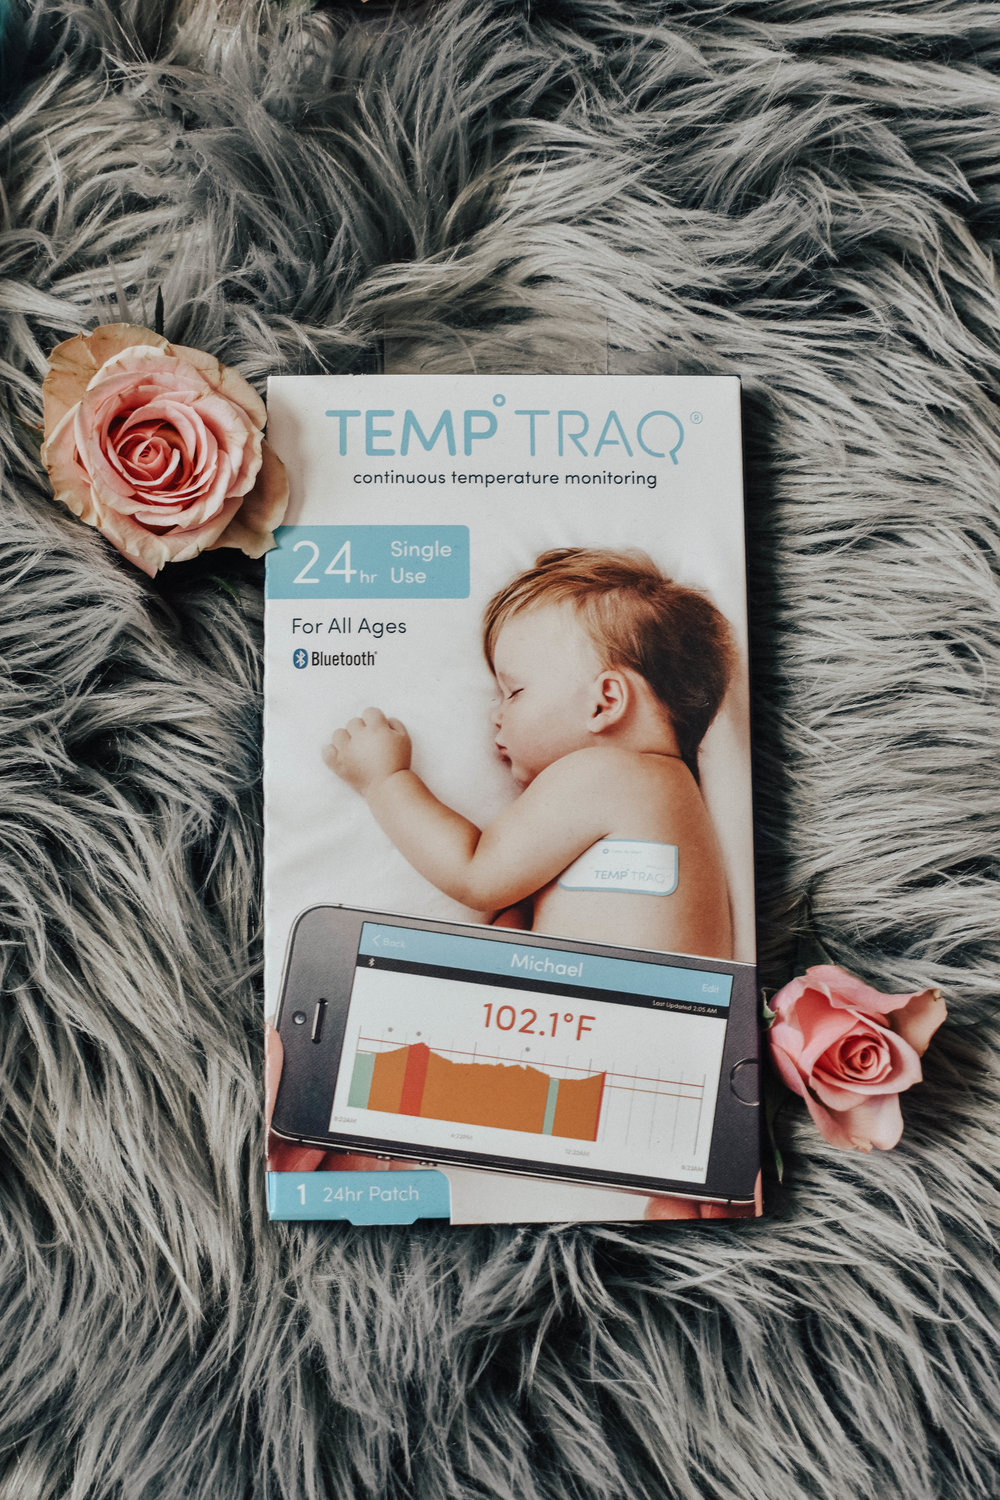 Temp Traq - Continuous Temperature Monitoring